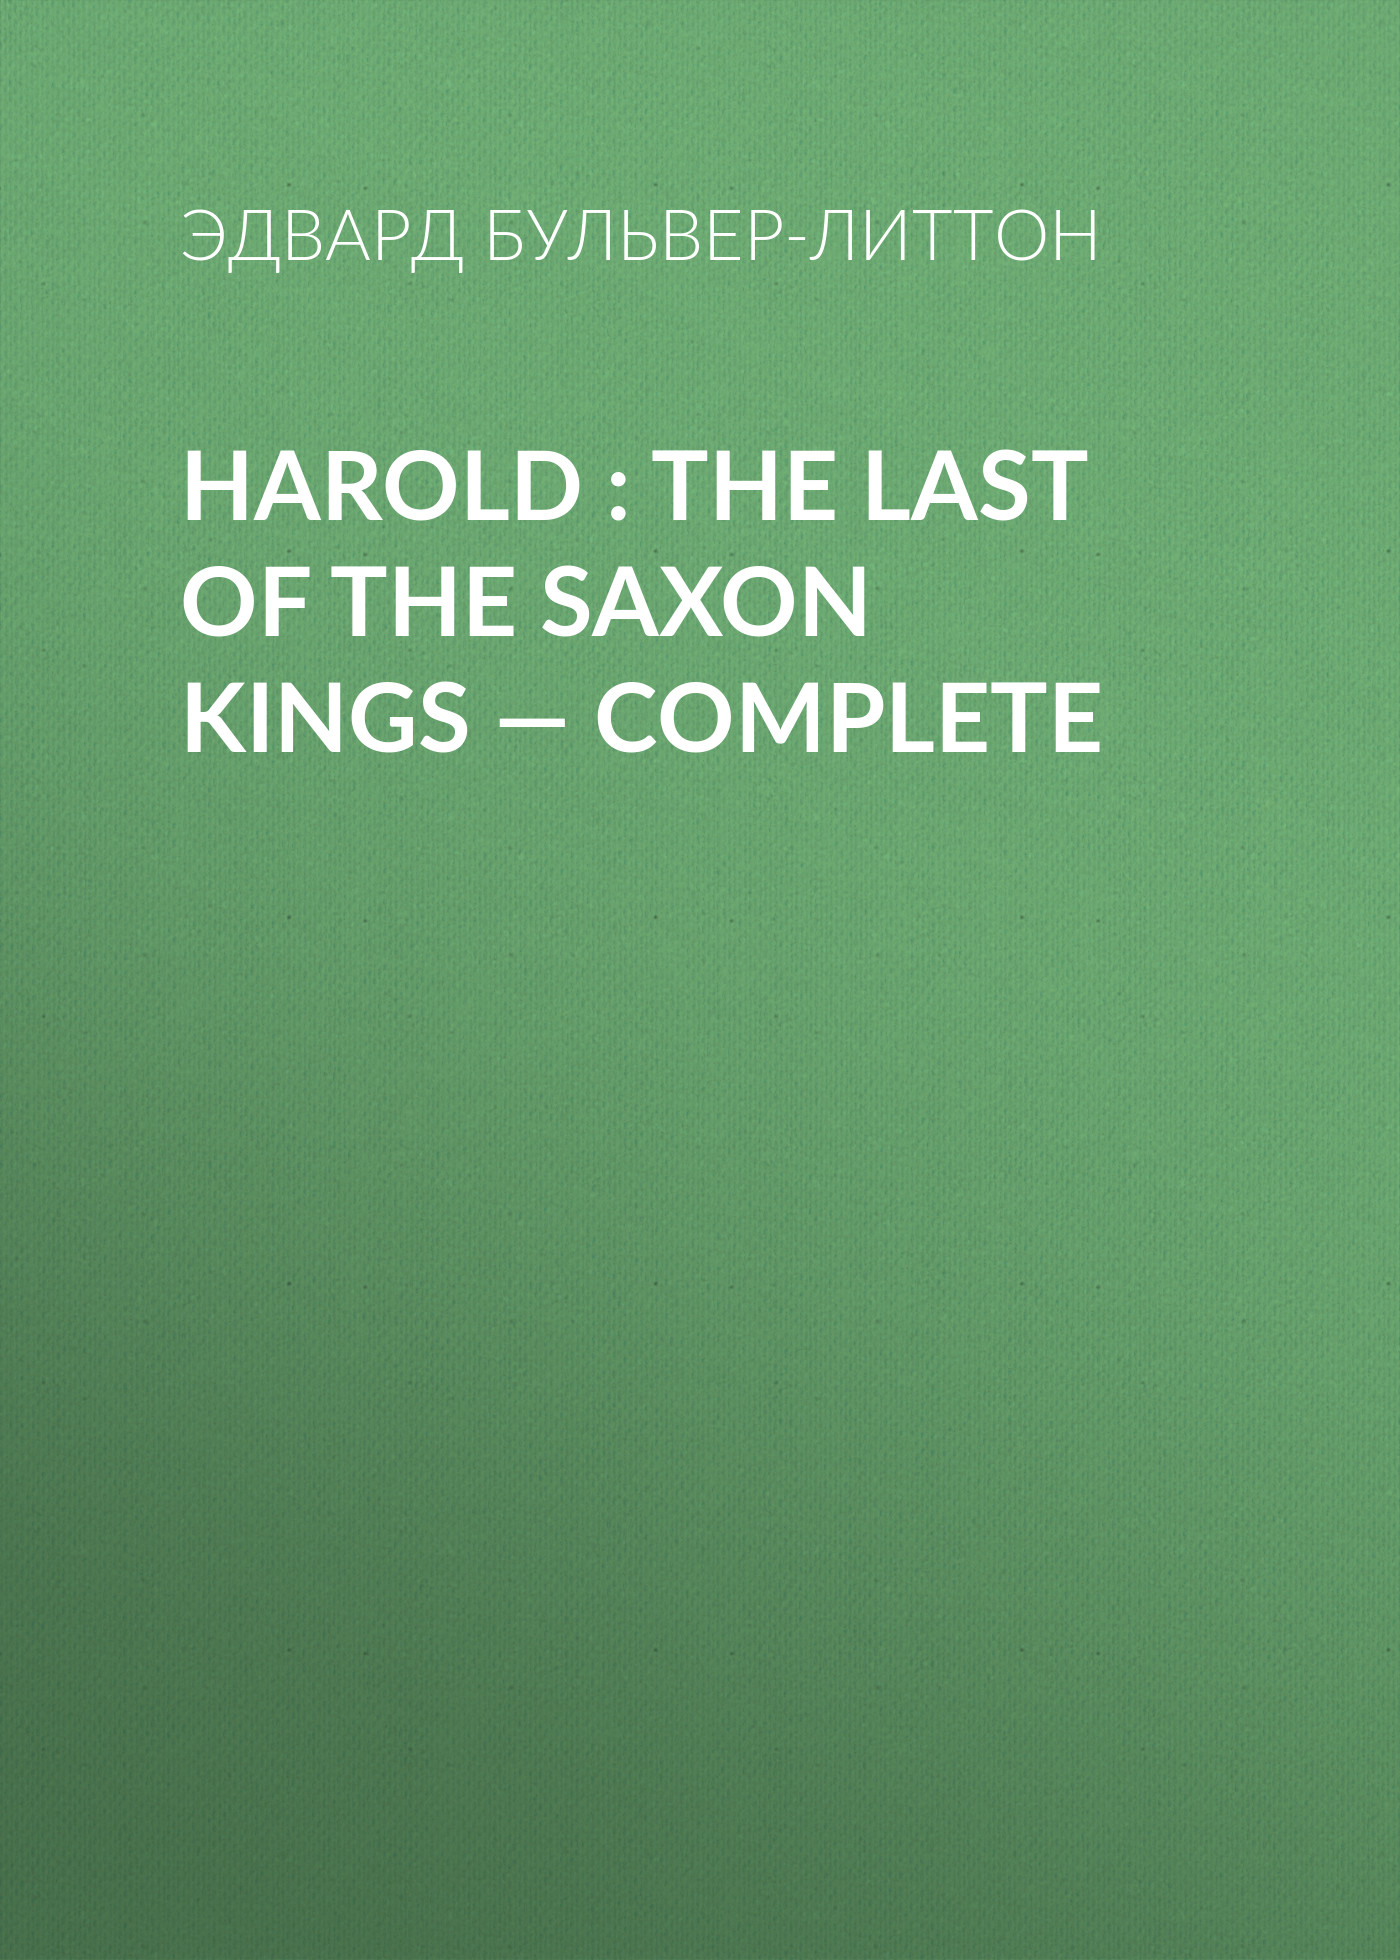 Эдвард Бульвер-Литтон Harold : the Last of the Saxon Kings — Complete эдвард бульвер литтон harold the last of the saxon kings volume 06